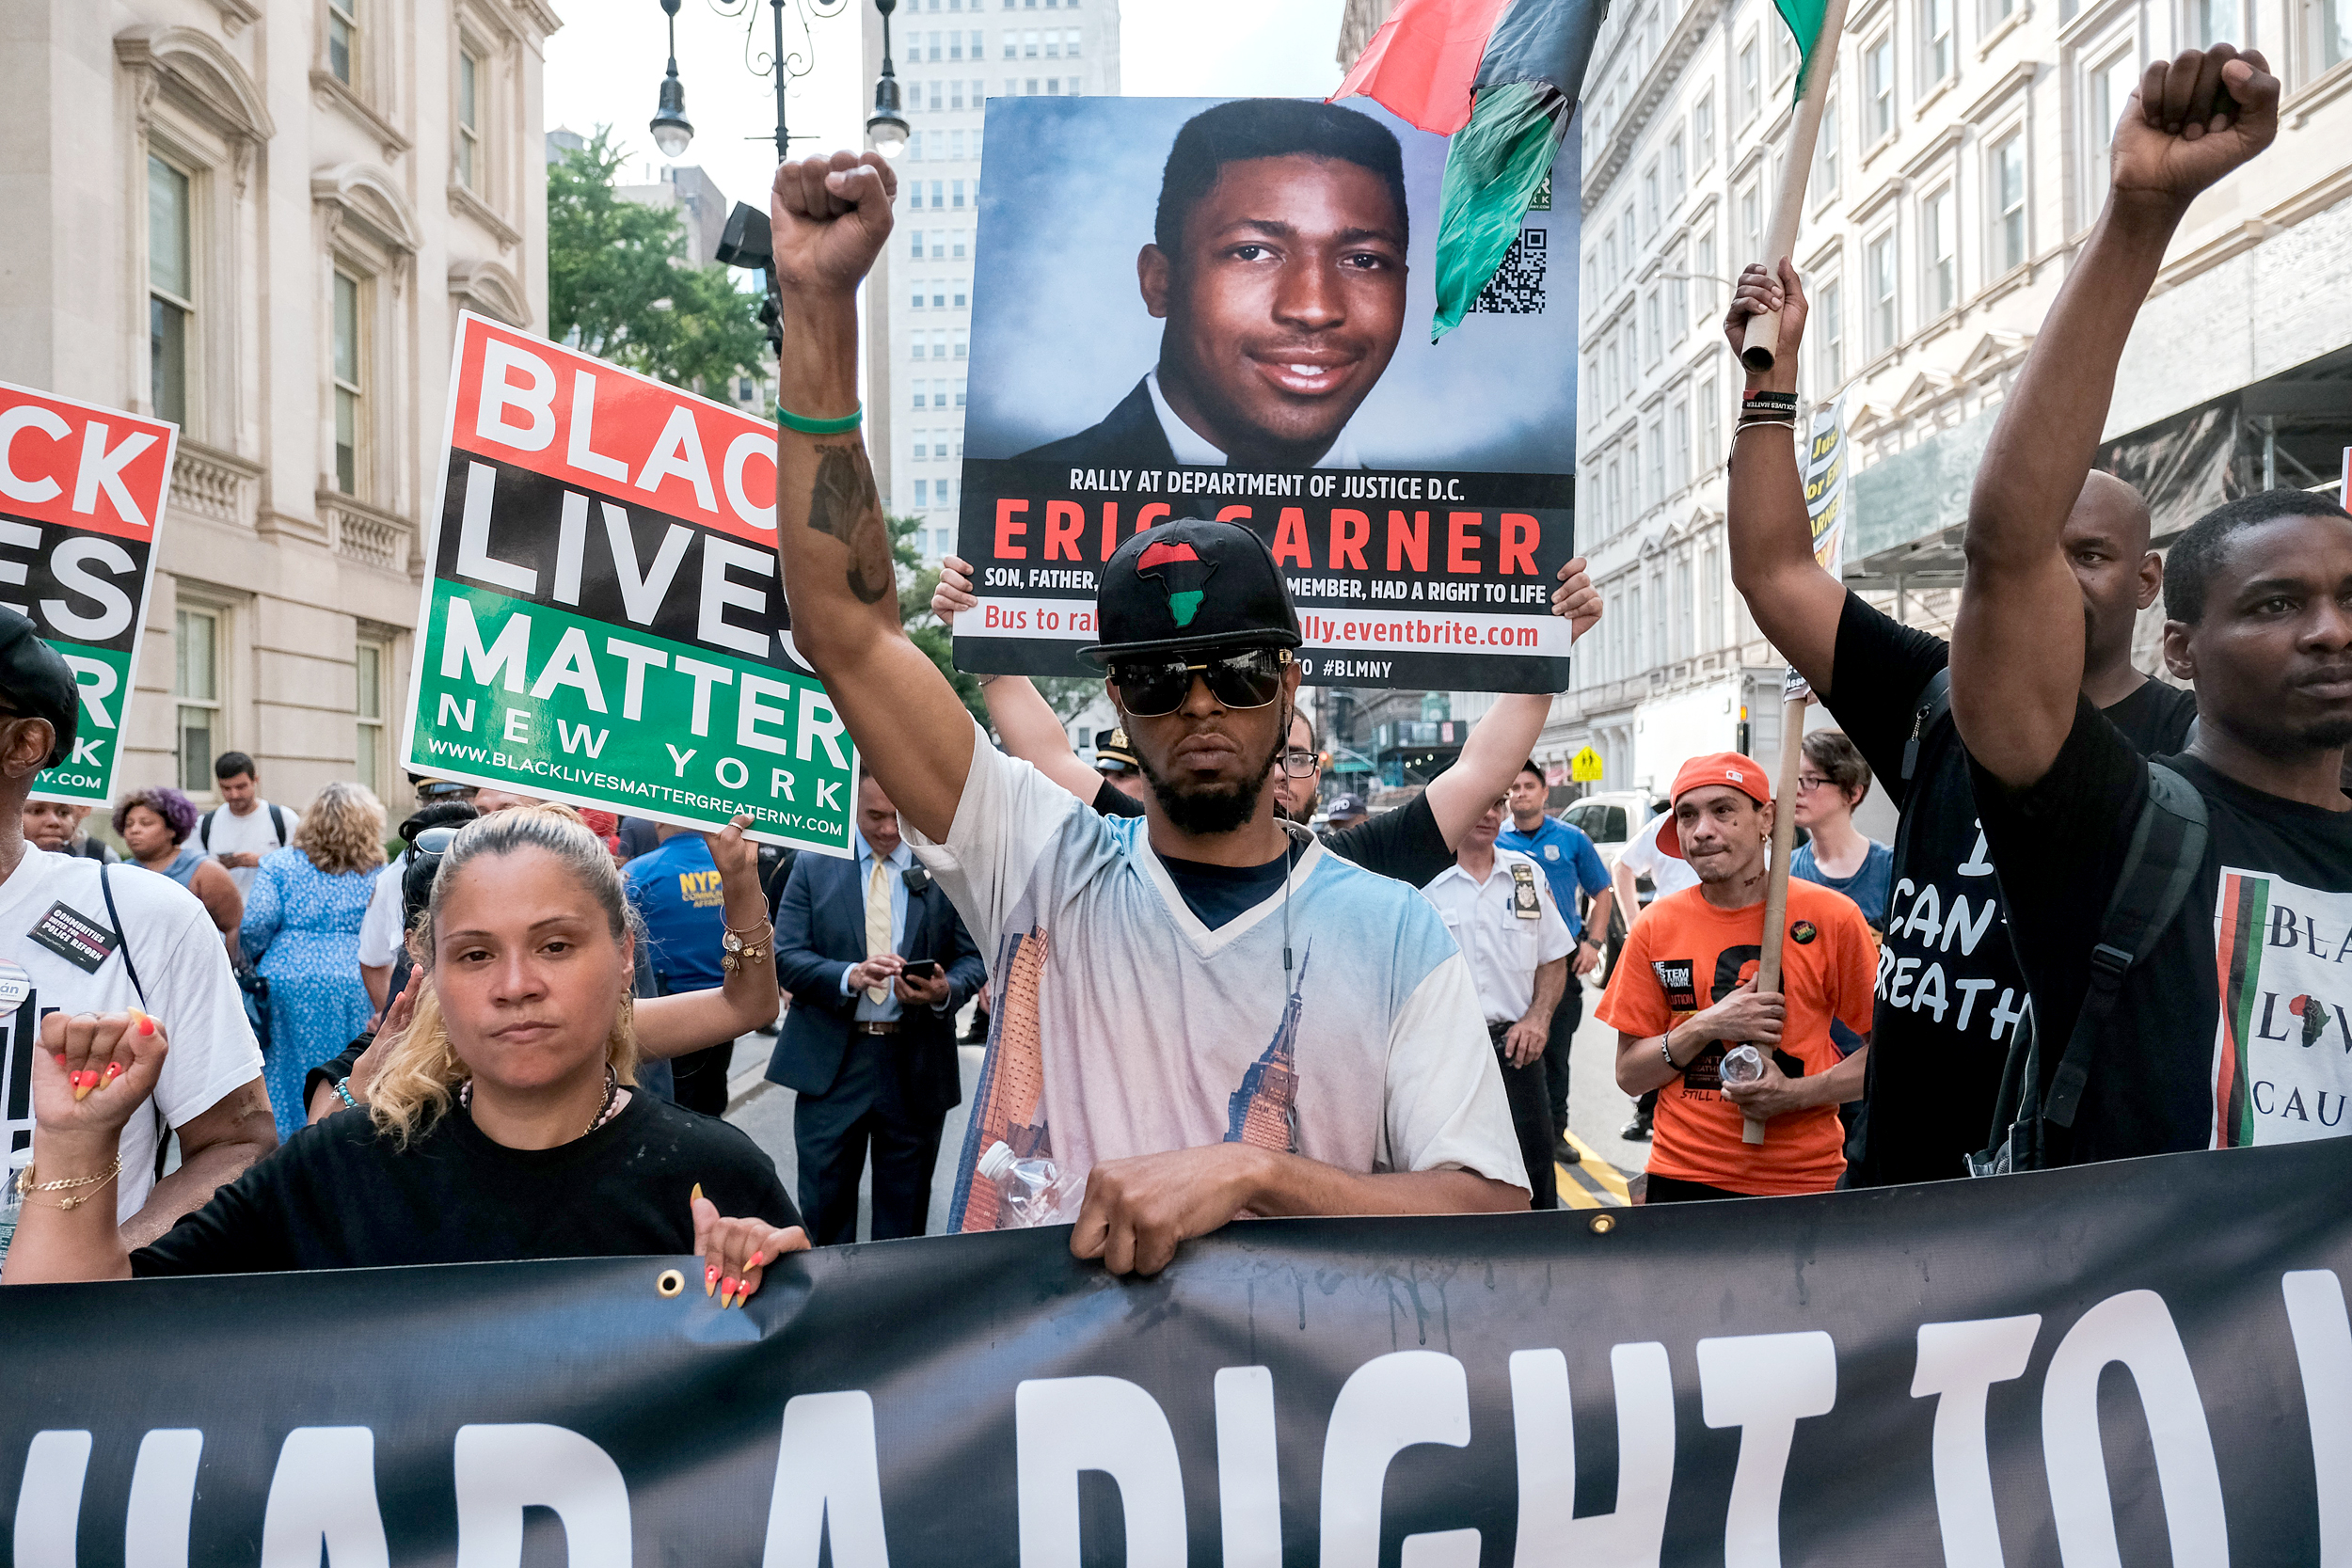 Pain of police killings ripples outward to traumatize Black people and communities across US 6/7/21